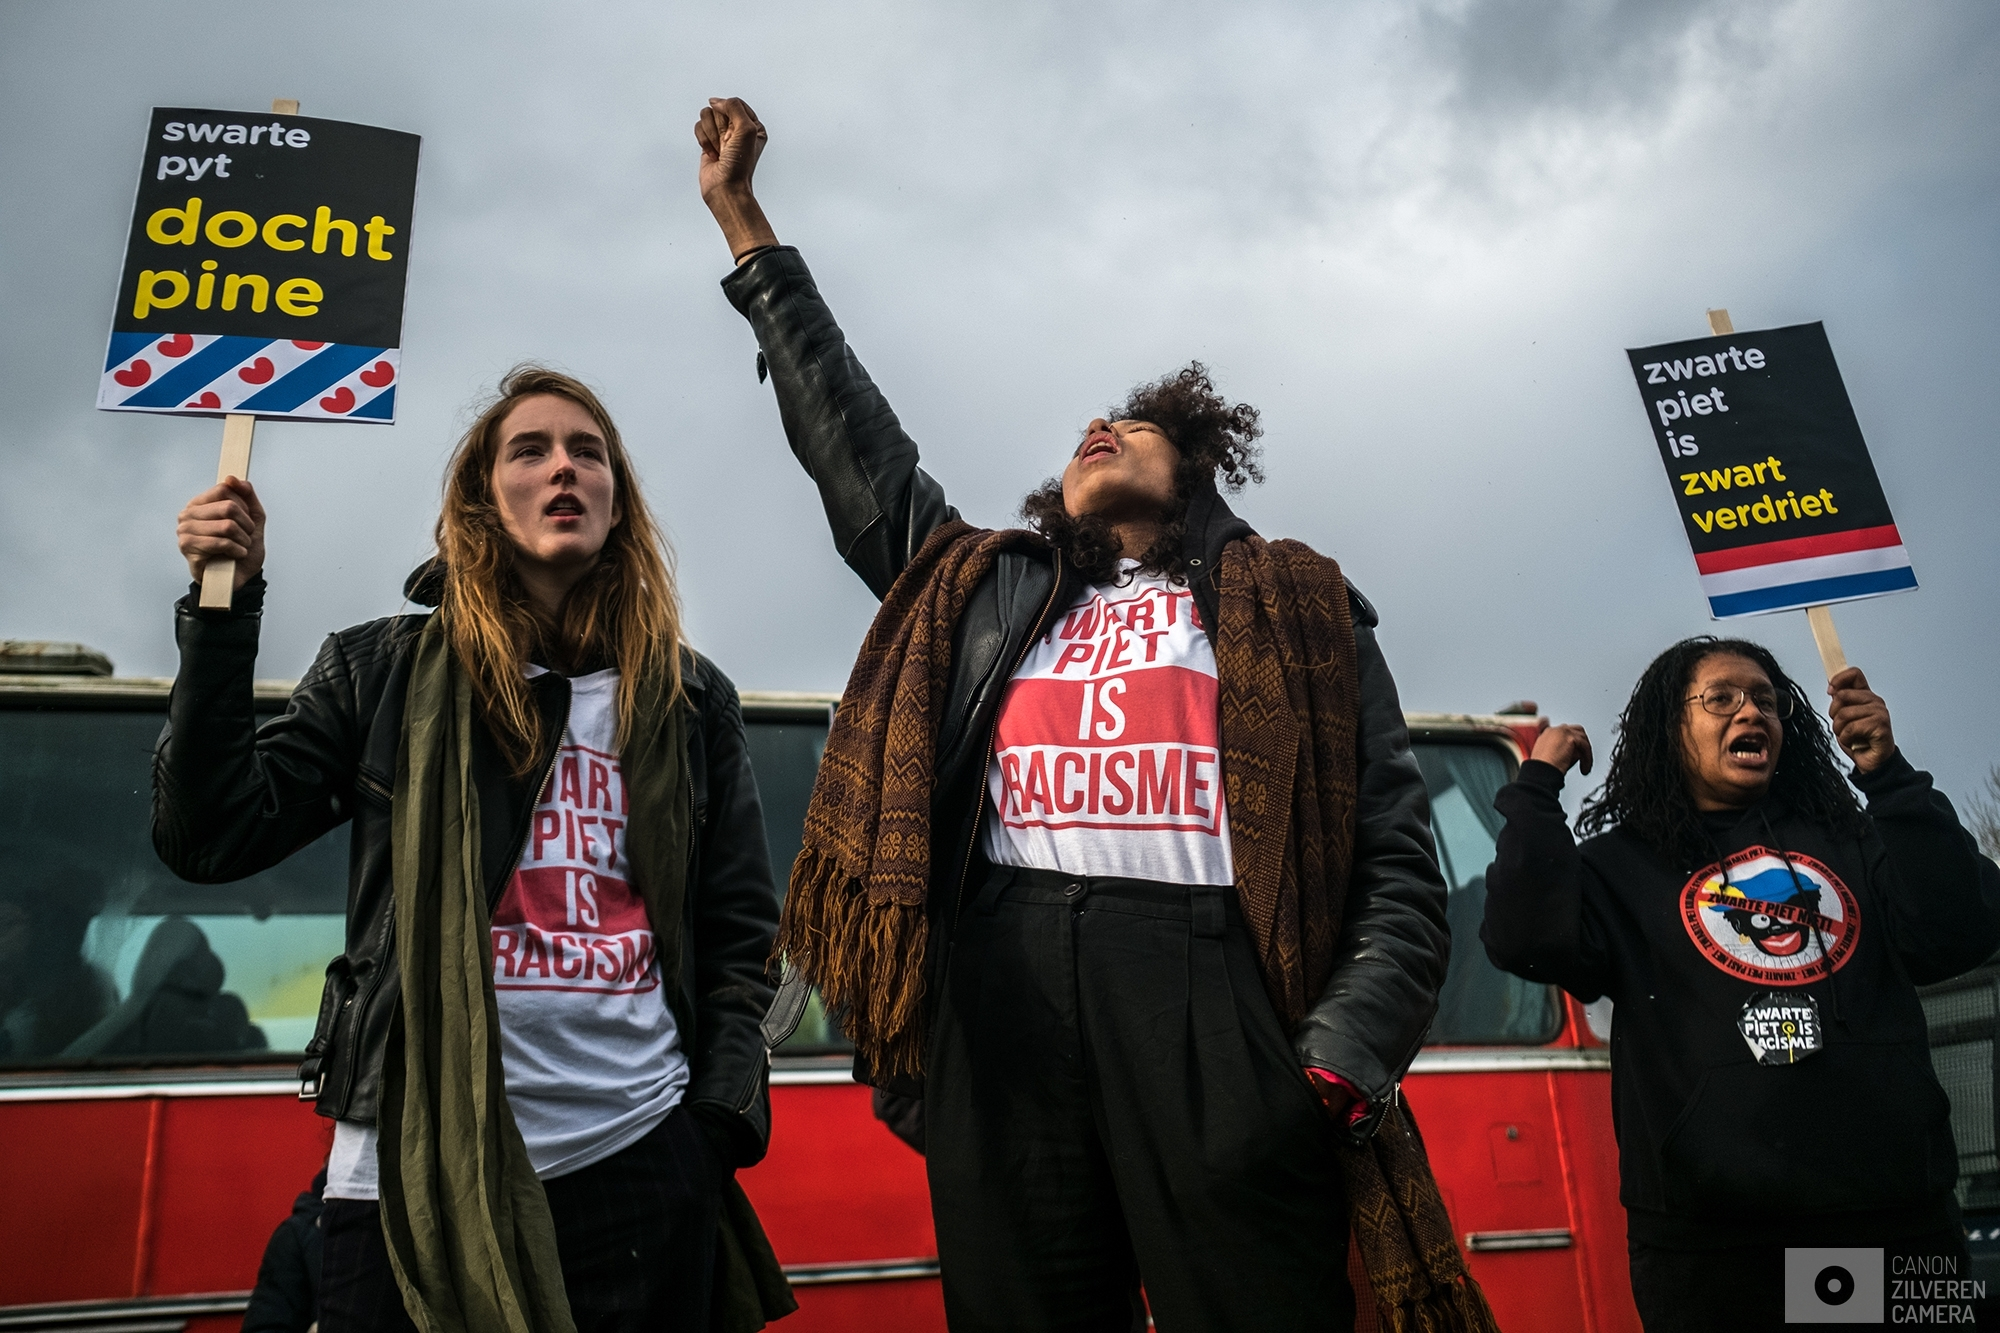 OUDEHASKE | A couple of Anti Black-Pete activists are shouting slogans while waiting during a break at a gas station while being escorted back to Amsterdam.  | #11